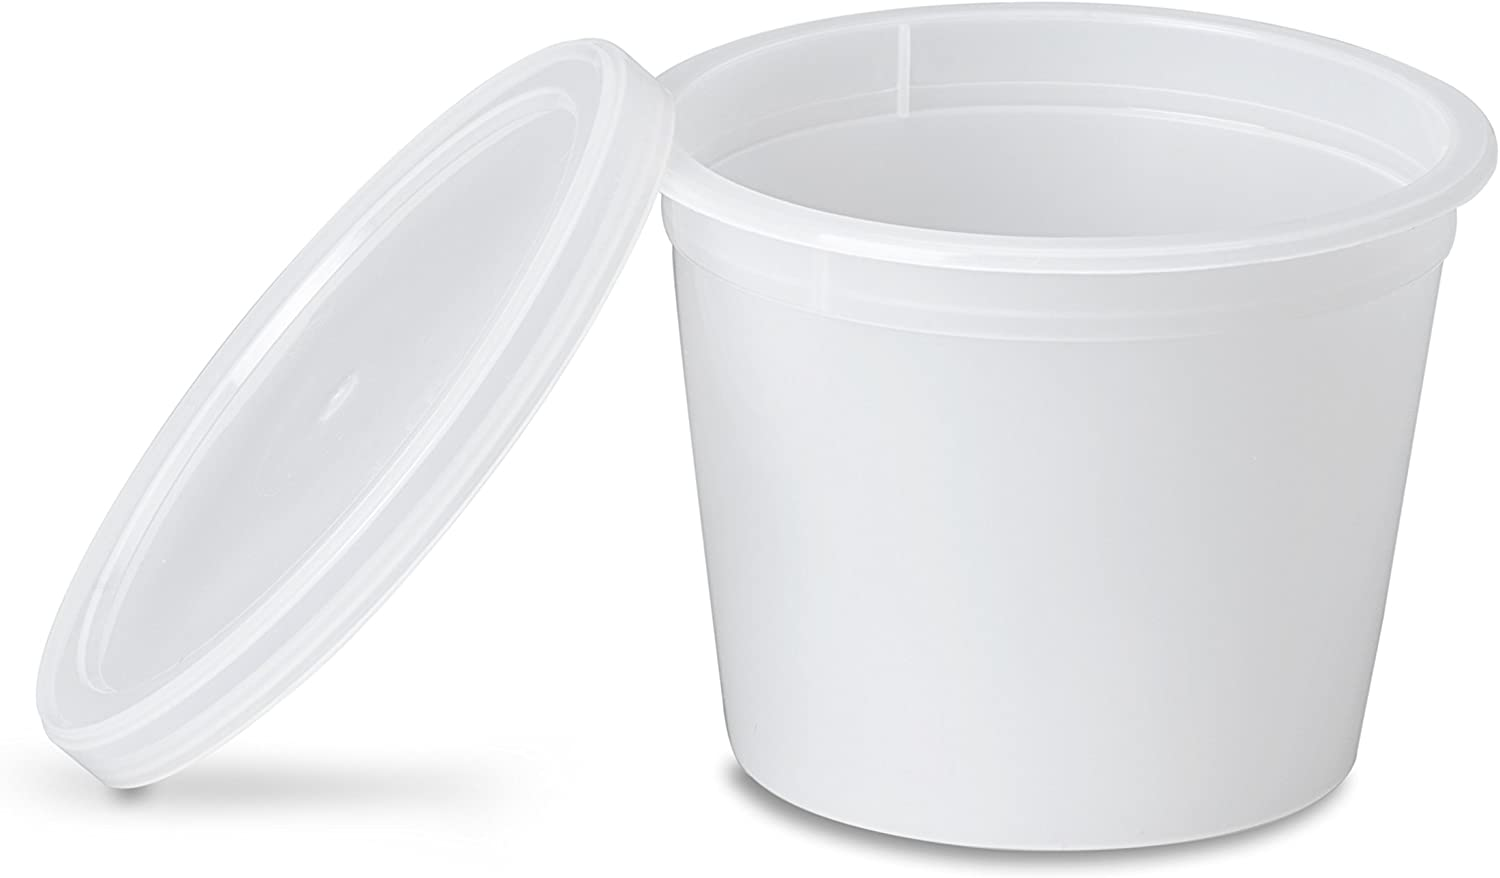 Deluxe 4oz Deli Food Storage Containers Designed for Fridge and Freezer (100 Pack)